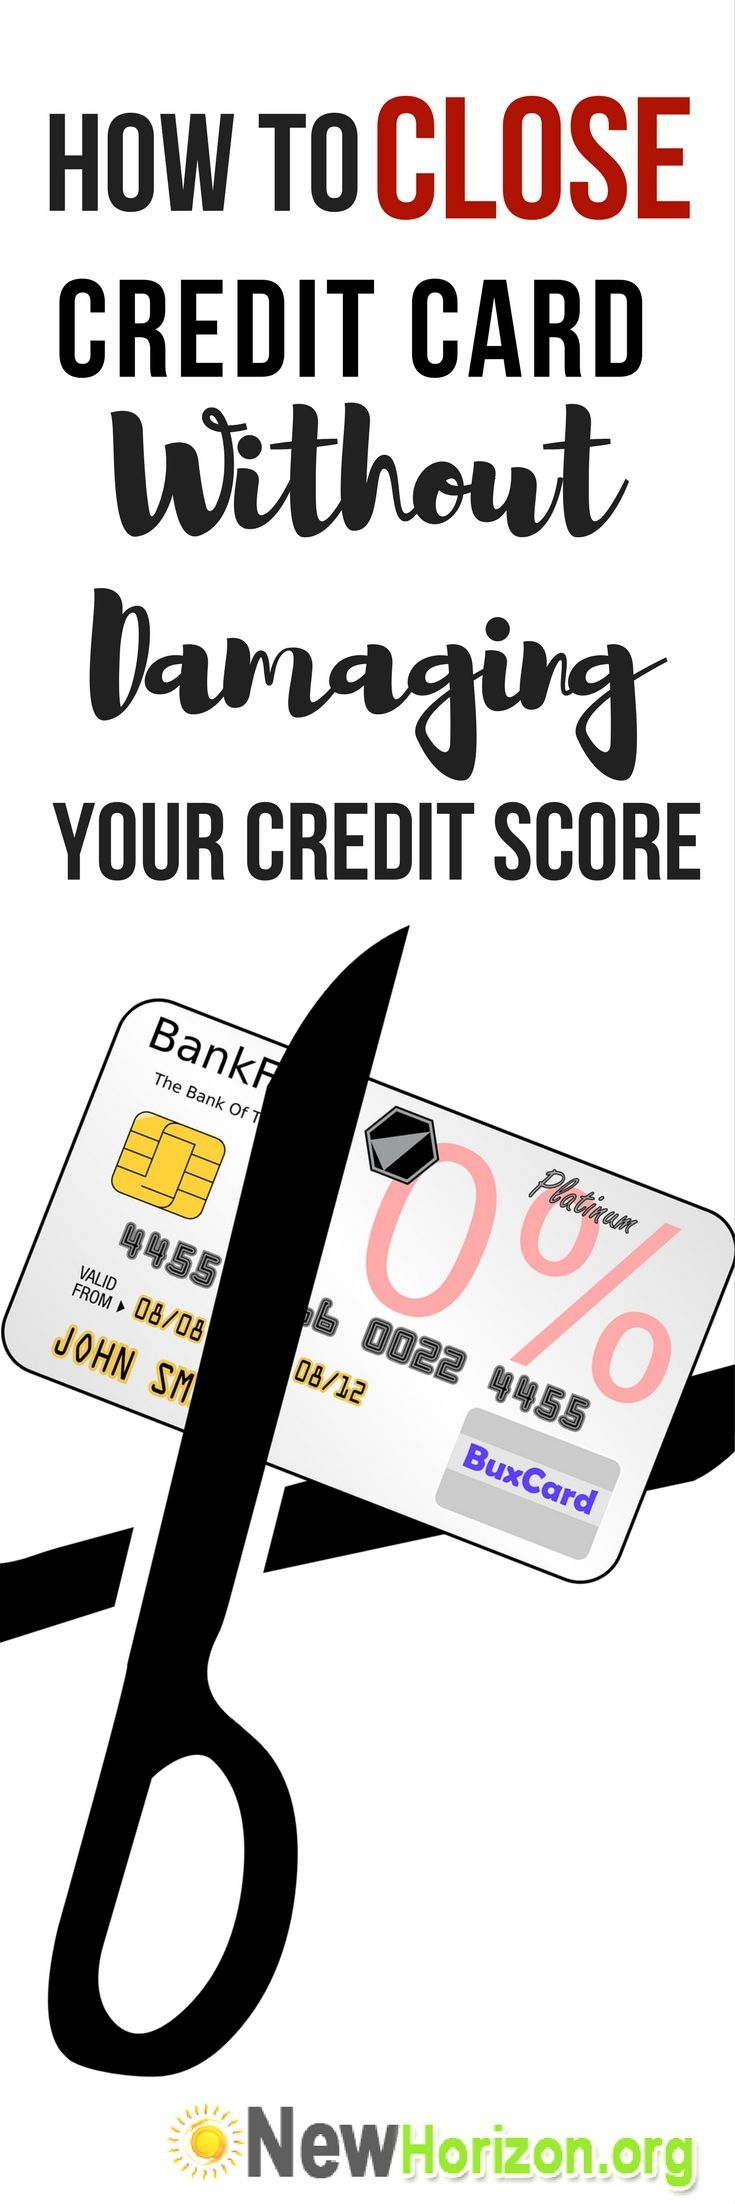 Do you think it is bad to  close credit cards? And if you have no choice, this article will also discuss how to cut your credit card without damaging your credit ratings.